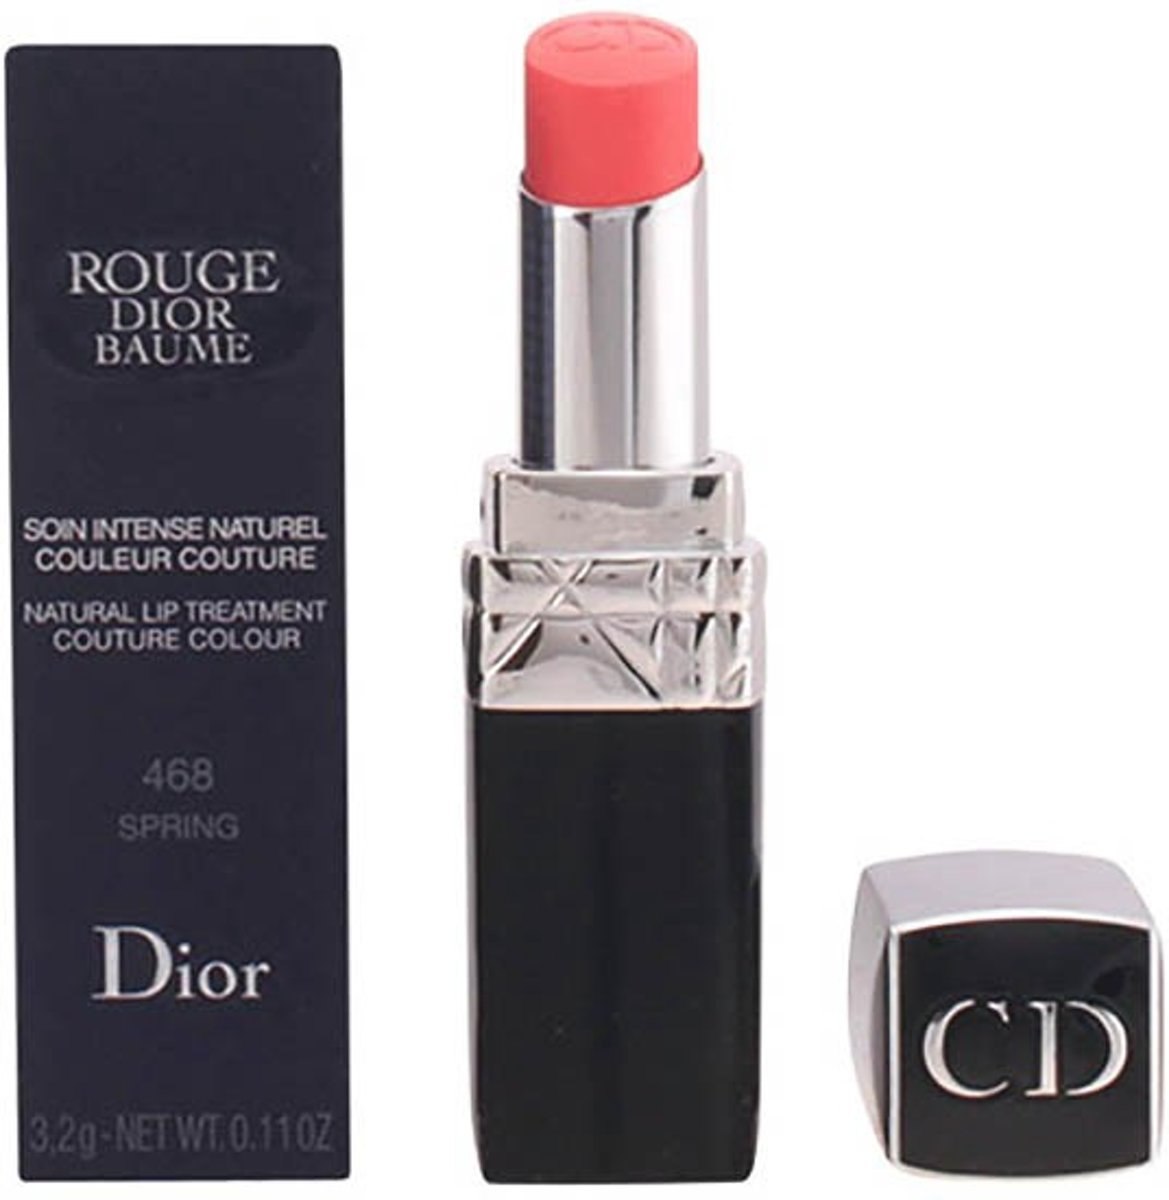 C.Dior Rouge Dior Baume Nat. Lip Treat. Cout. Col. 3.2 gr